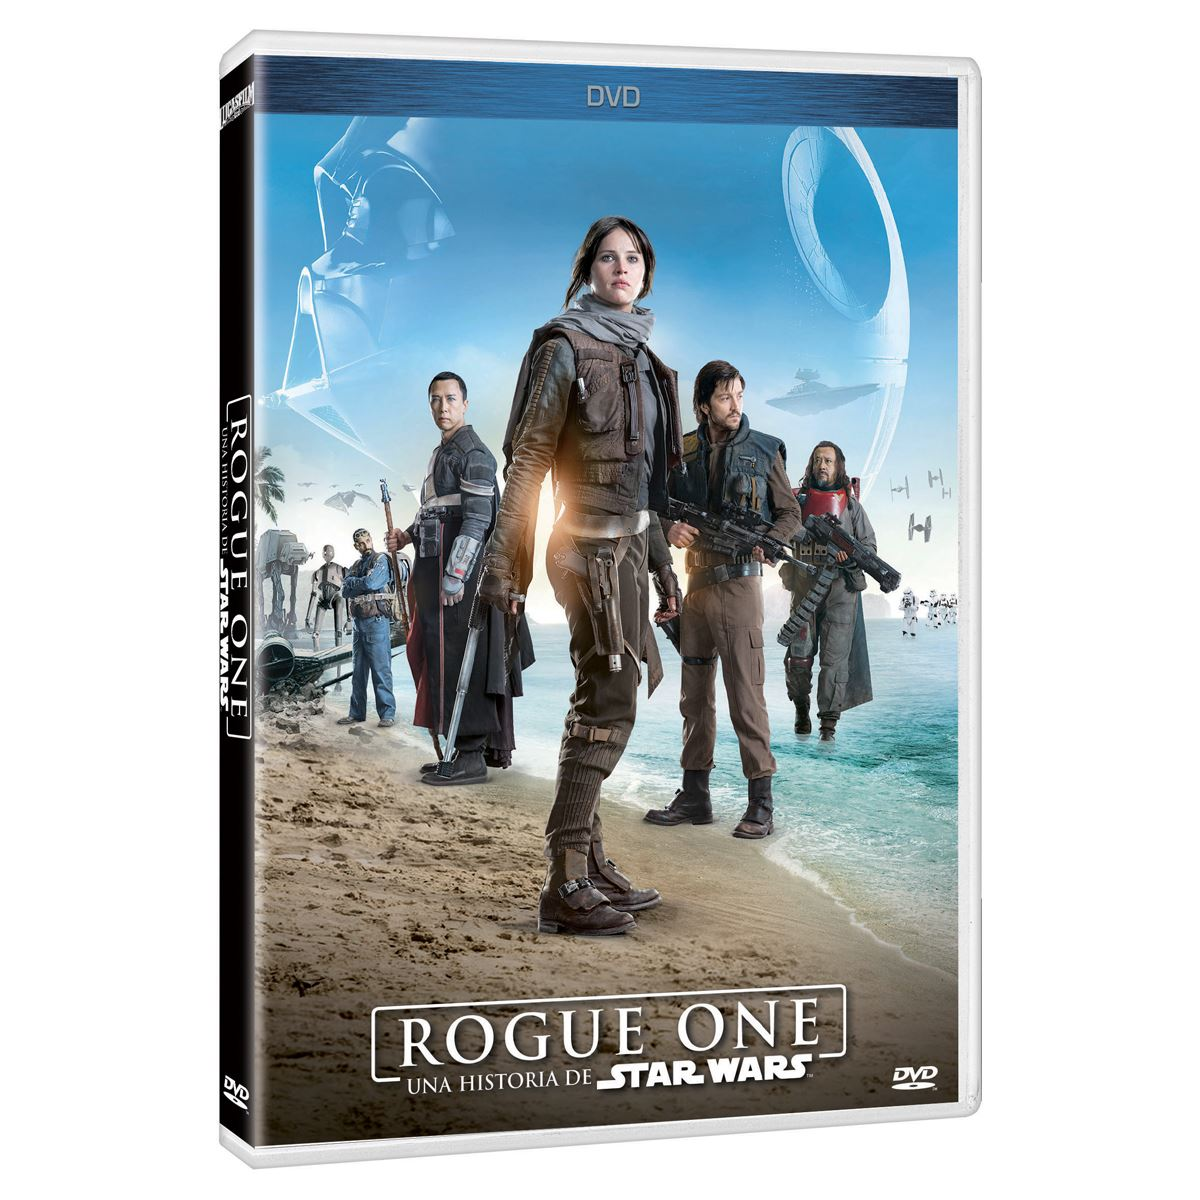 DVD Rogue One Una Historia de Star Wars